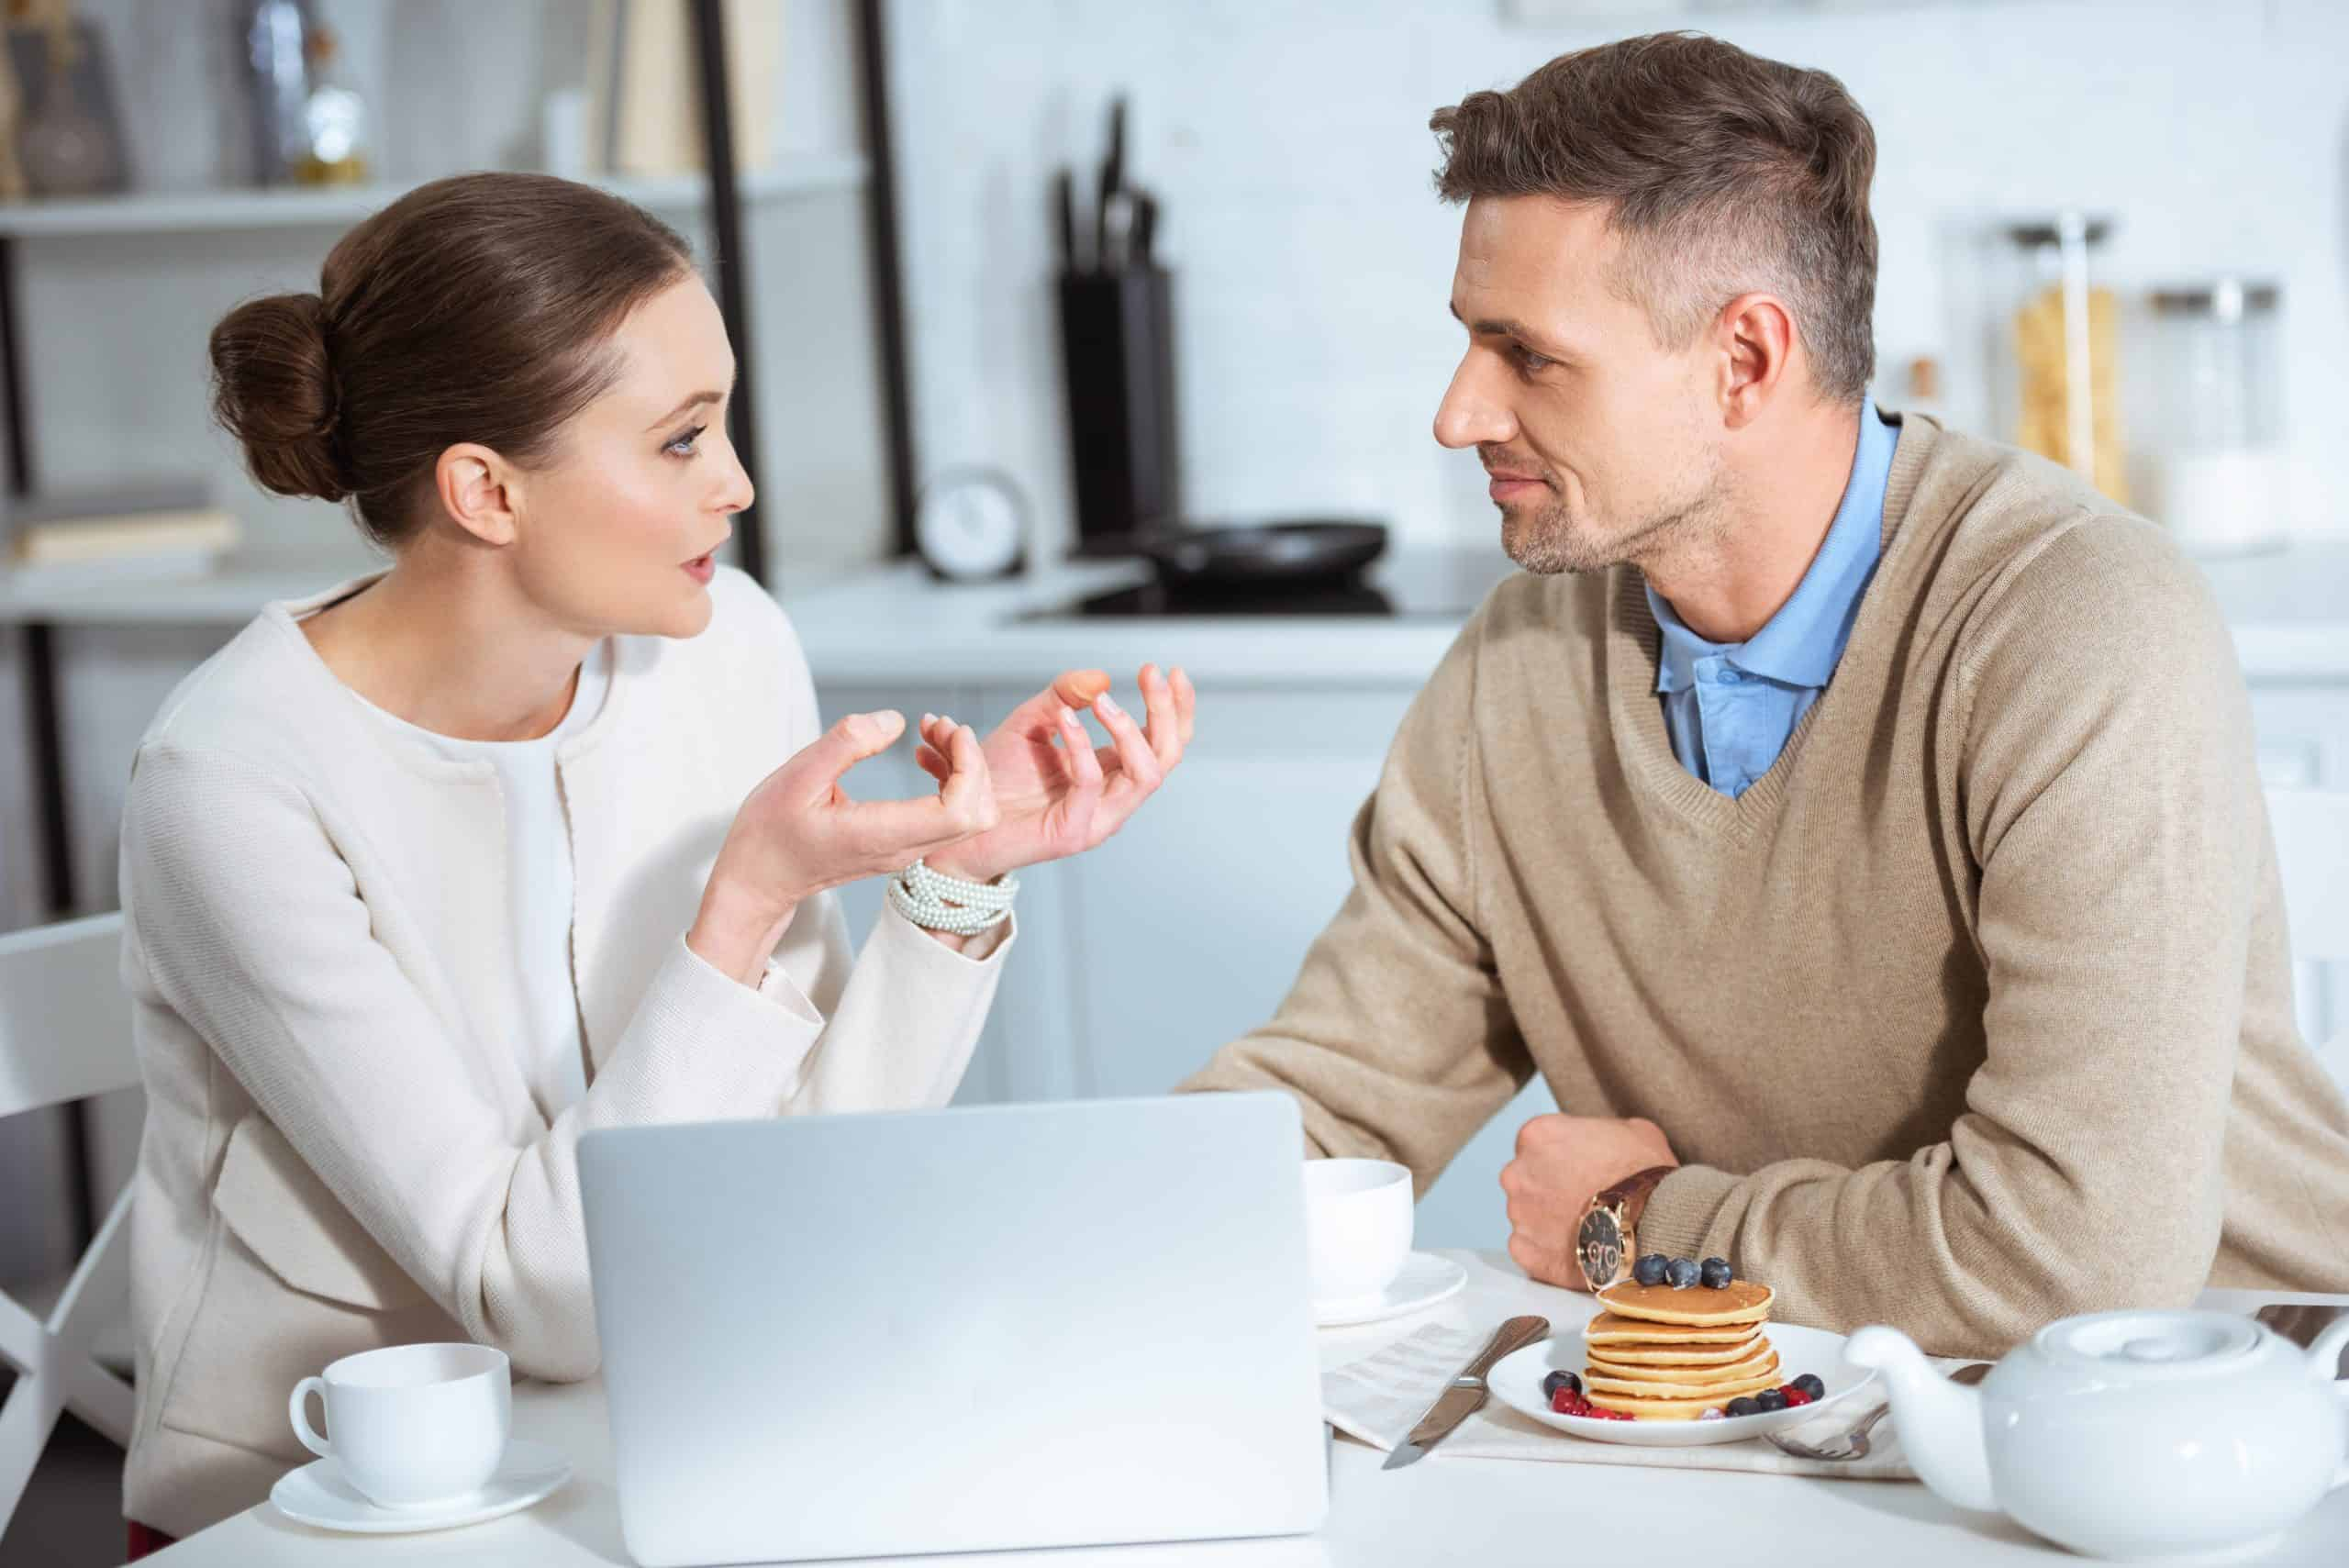 More frugal than spouse - White couple win white kitchen having important discussion with laptop